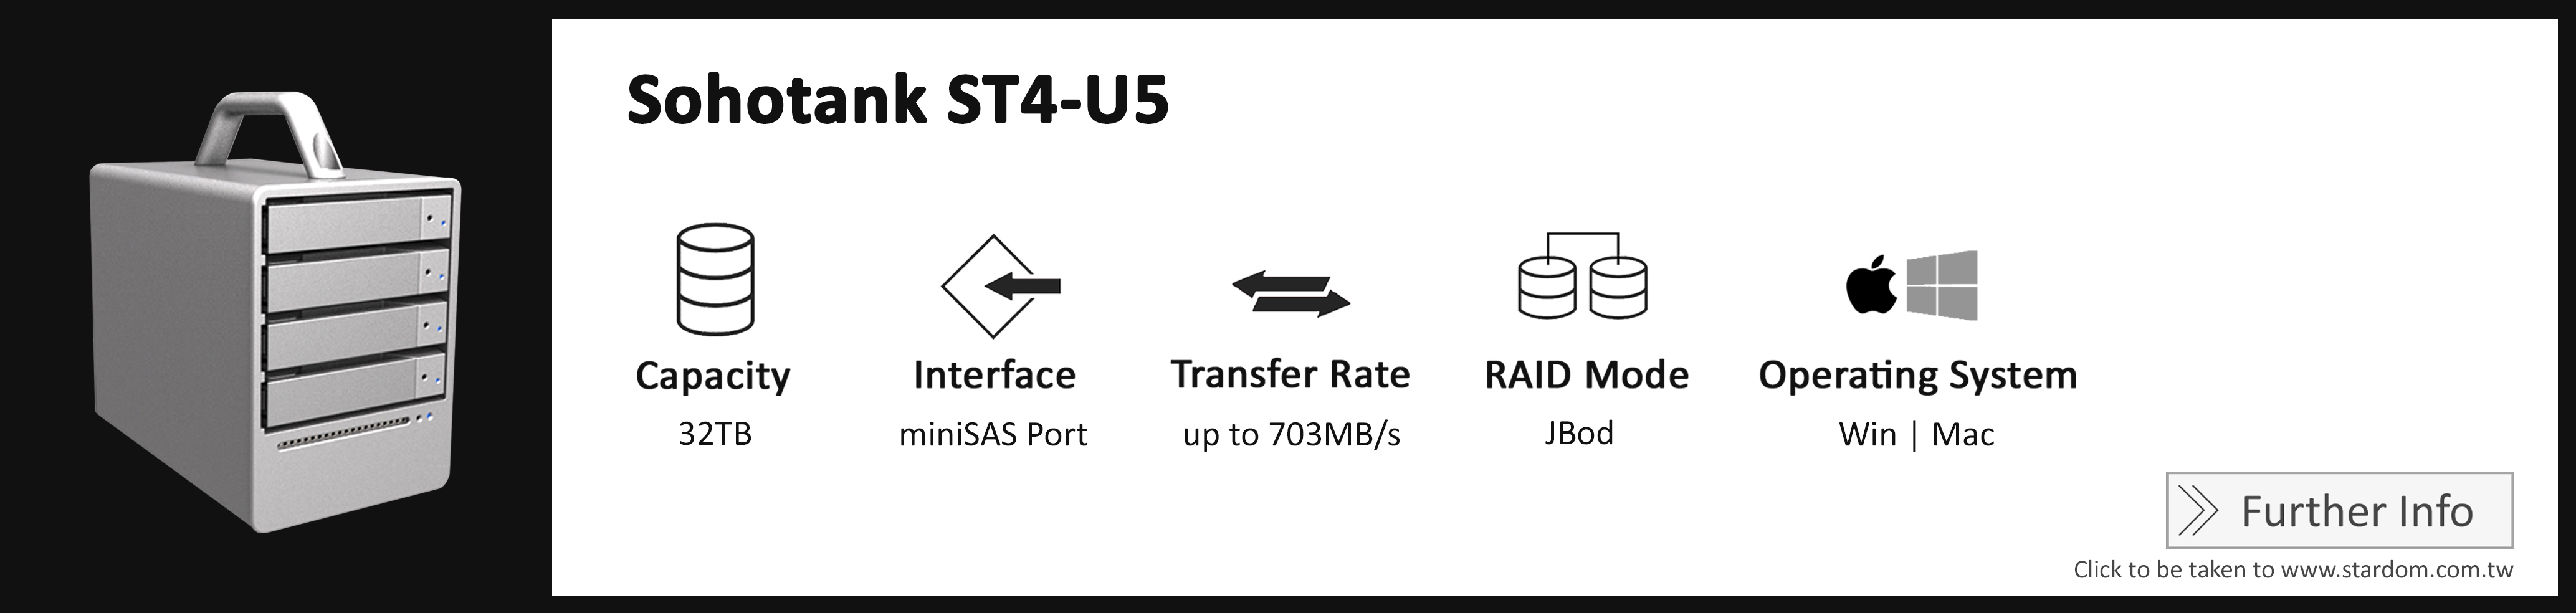 Stardom_ST4-U5_Cost Effective RAID Storage